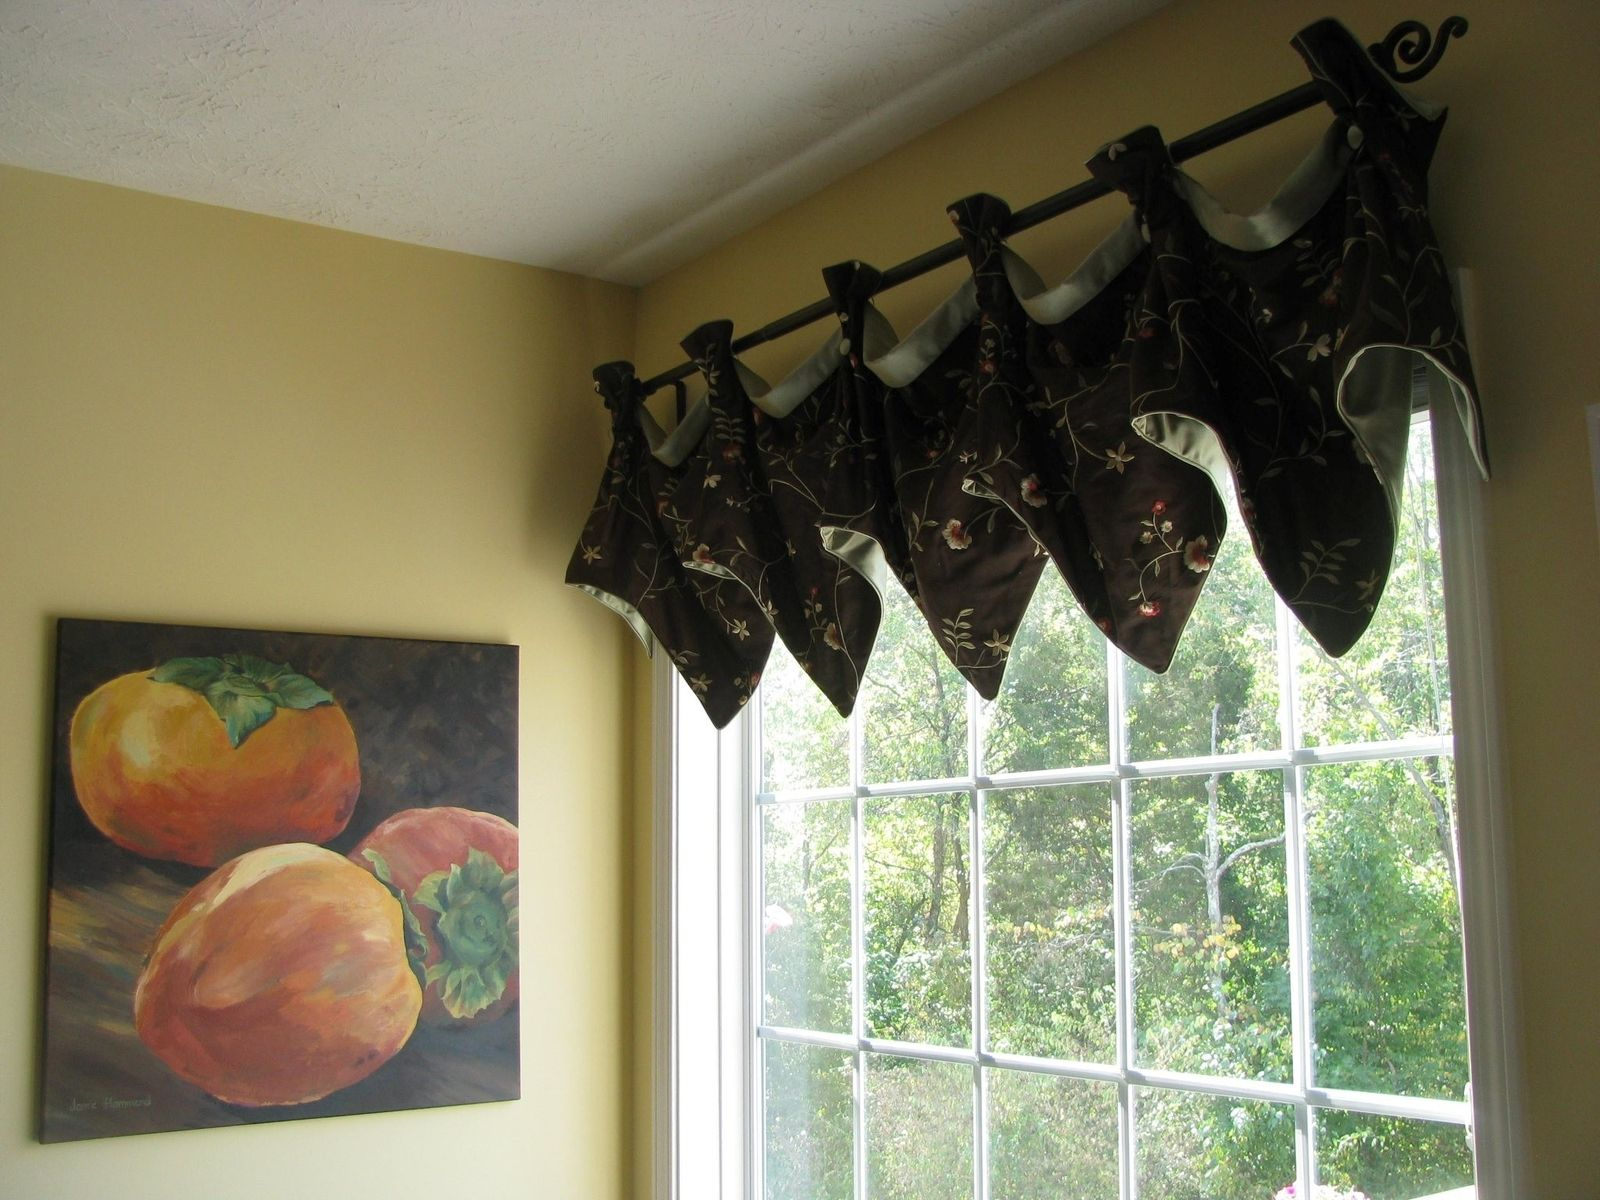 varnished combined yellow leaves valances wooden patterned brown for bay treatments pattern floral windows over living waterfall valance white green beautiful cabinet vintage striped with window kitchen venetian blinds interior room